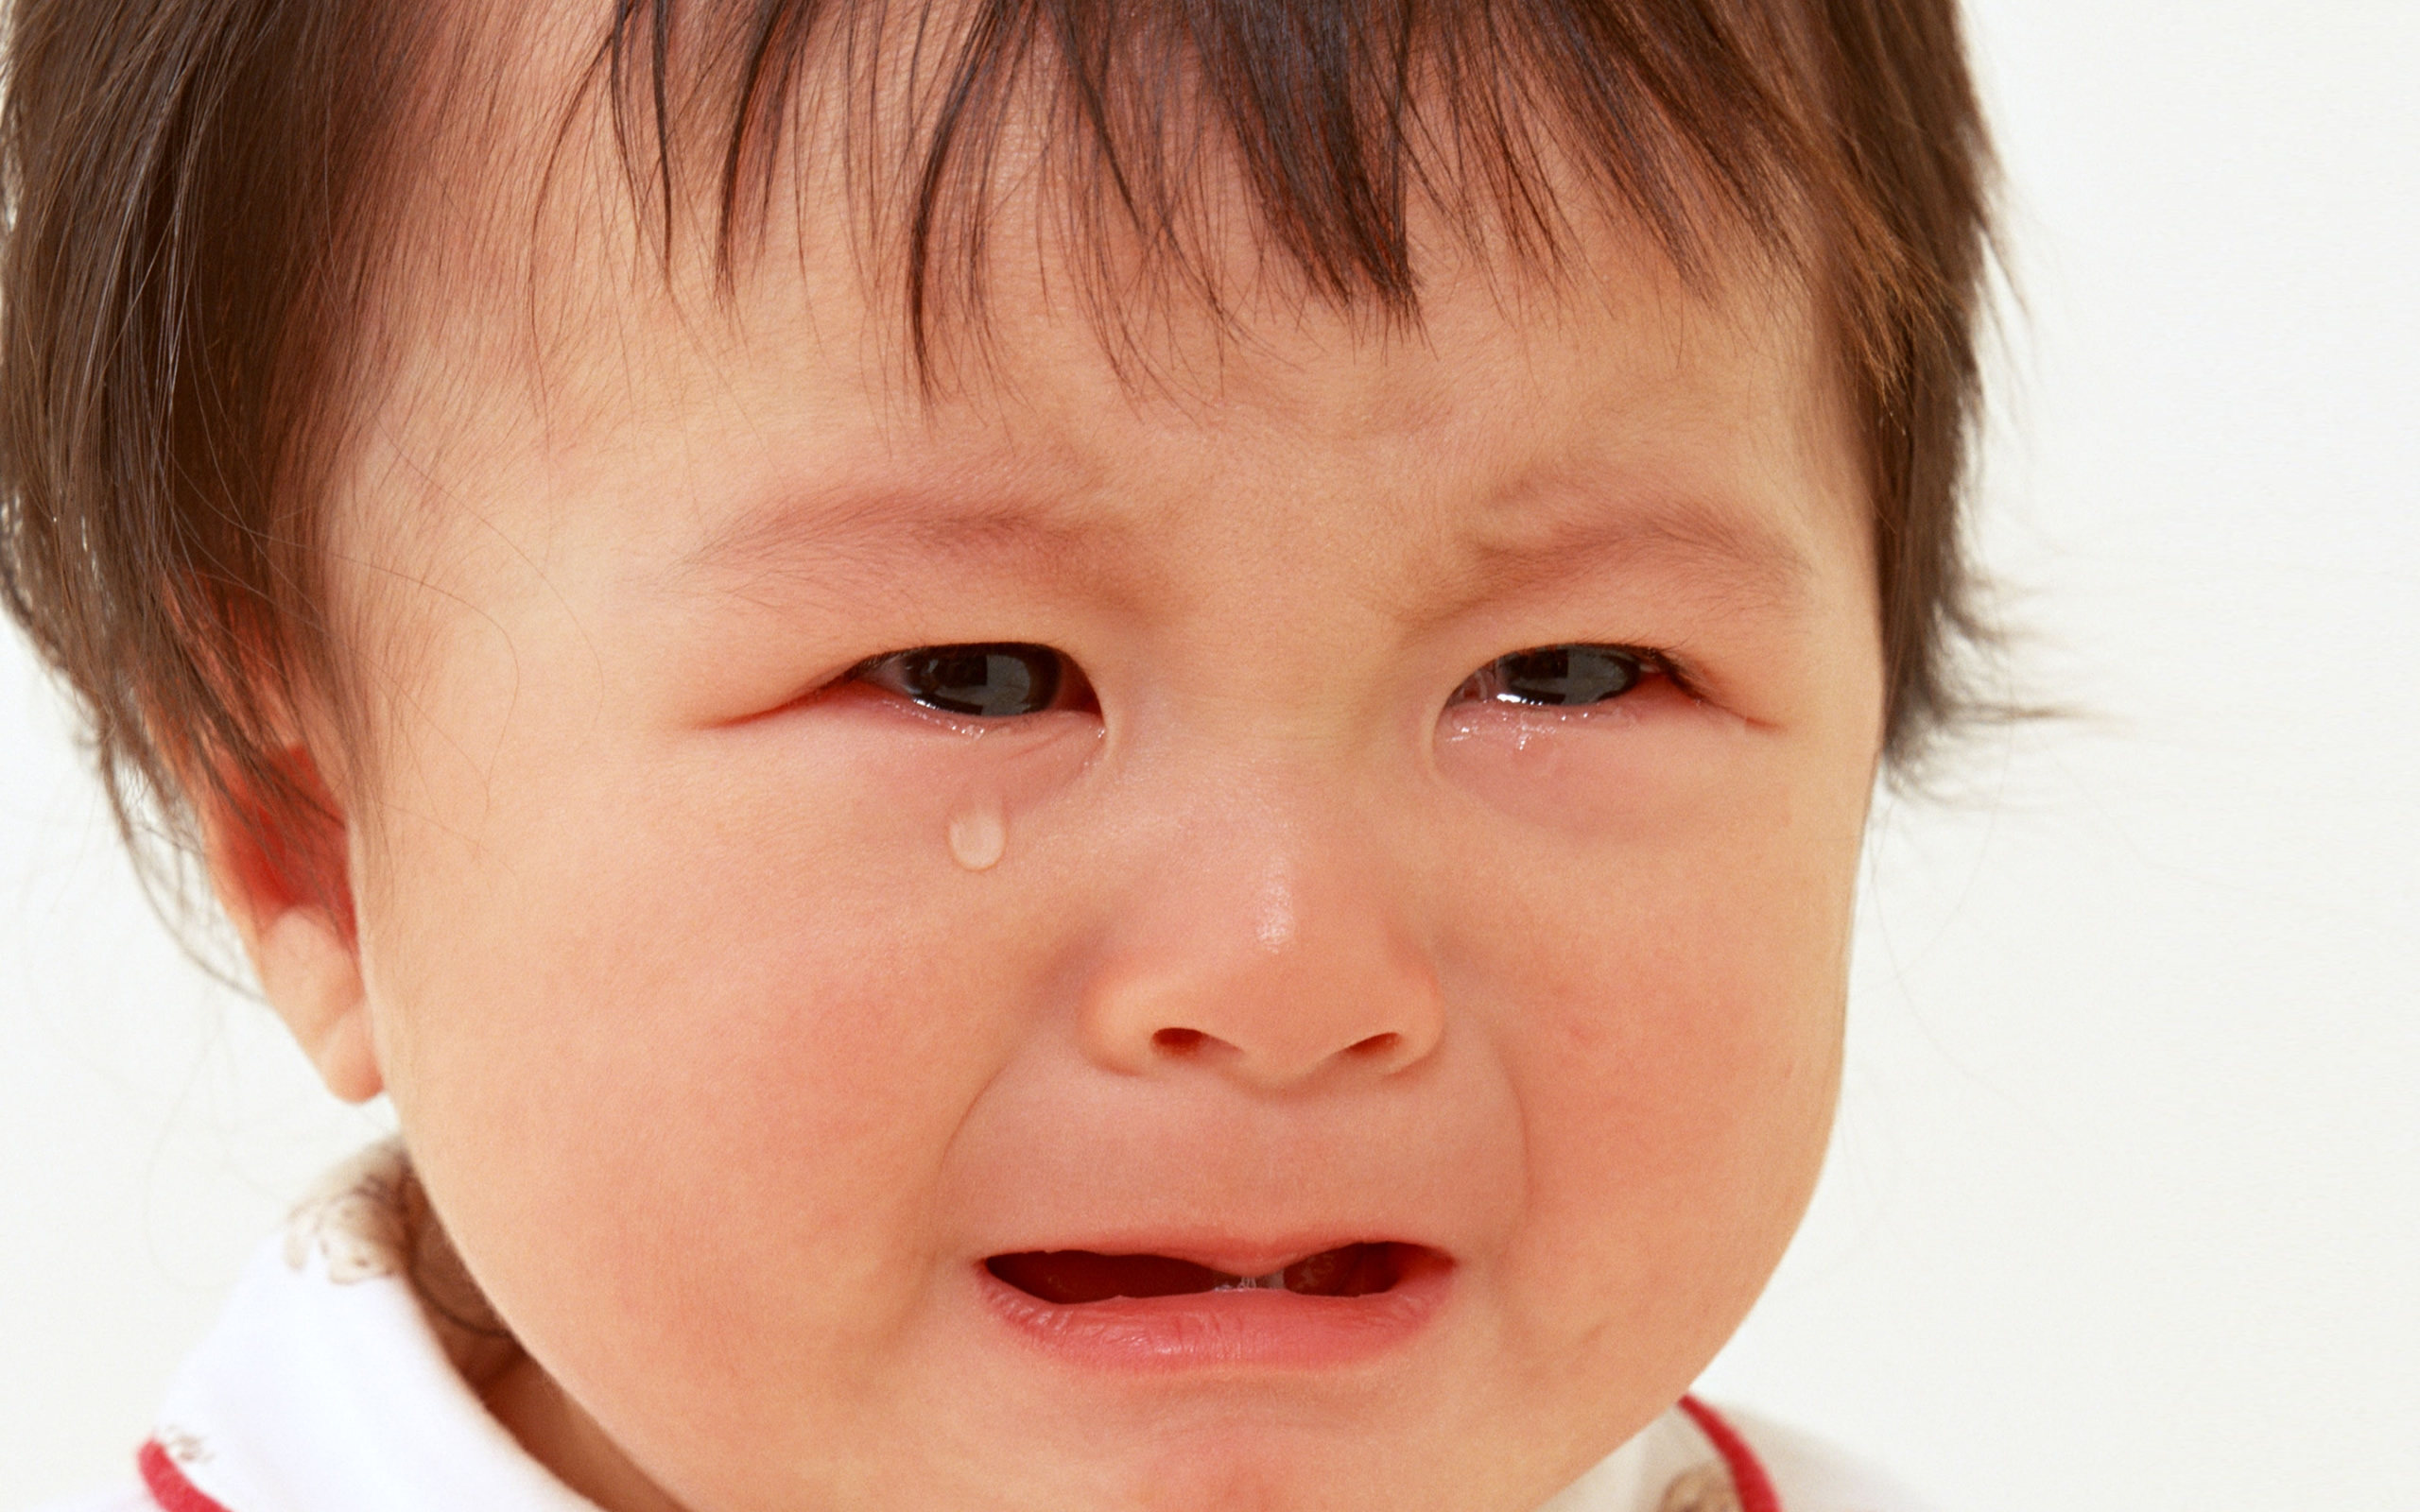 baby_face_tears_emotion_63393_2560x1600